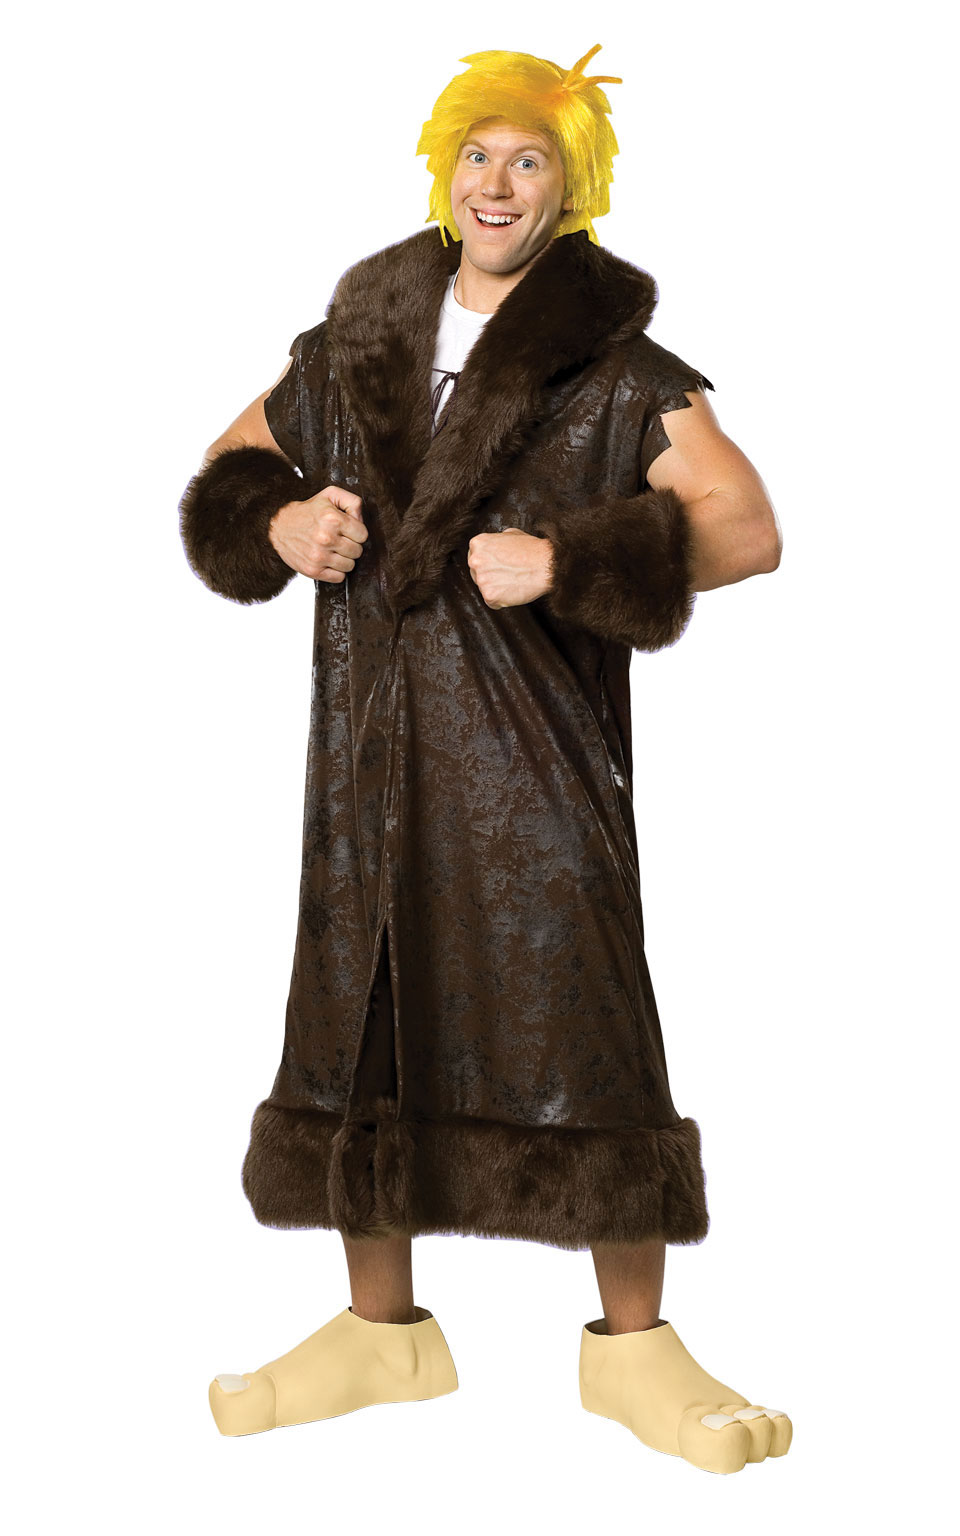 Barney Rubble, Flinstones Costume